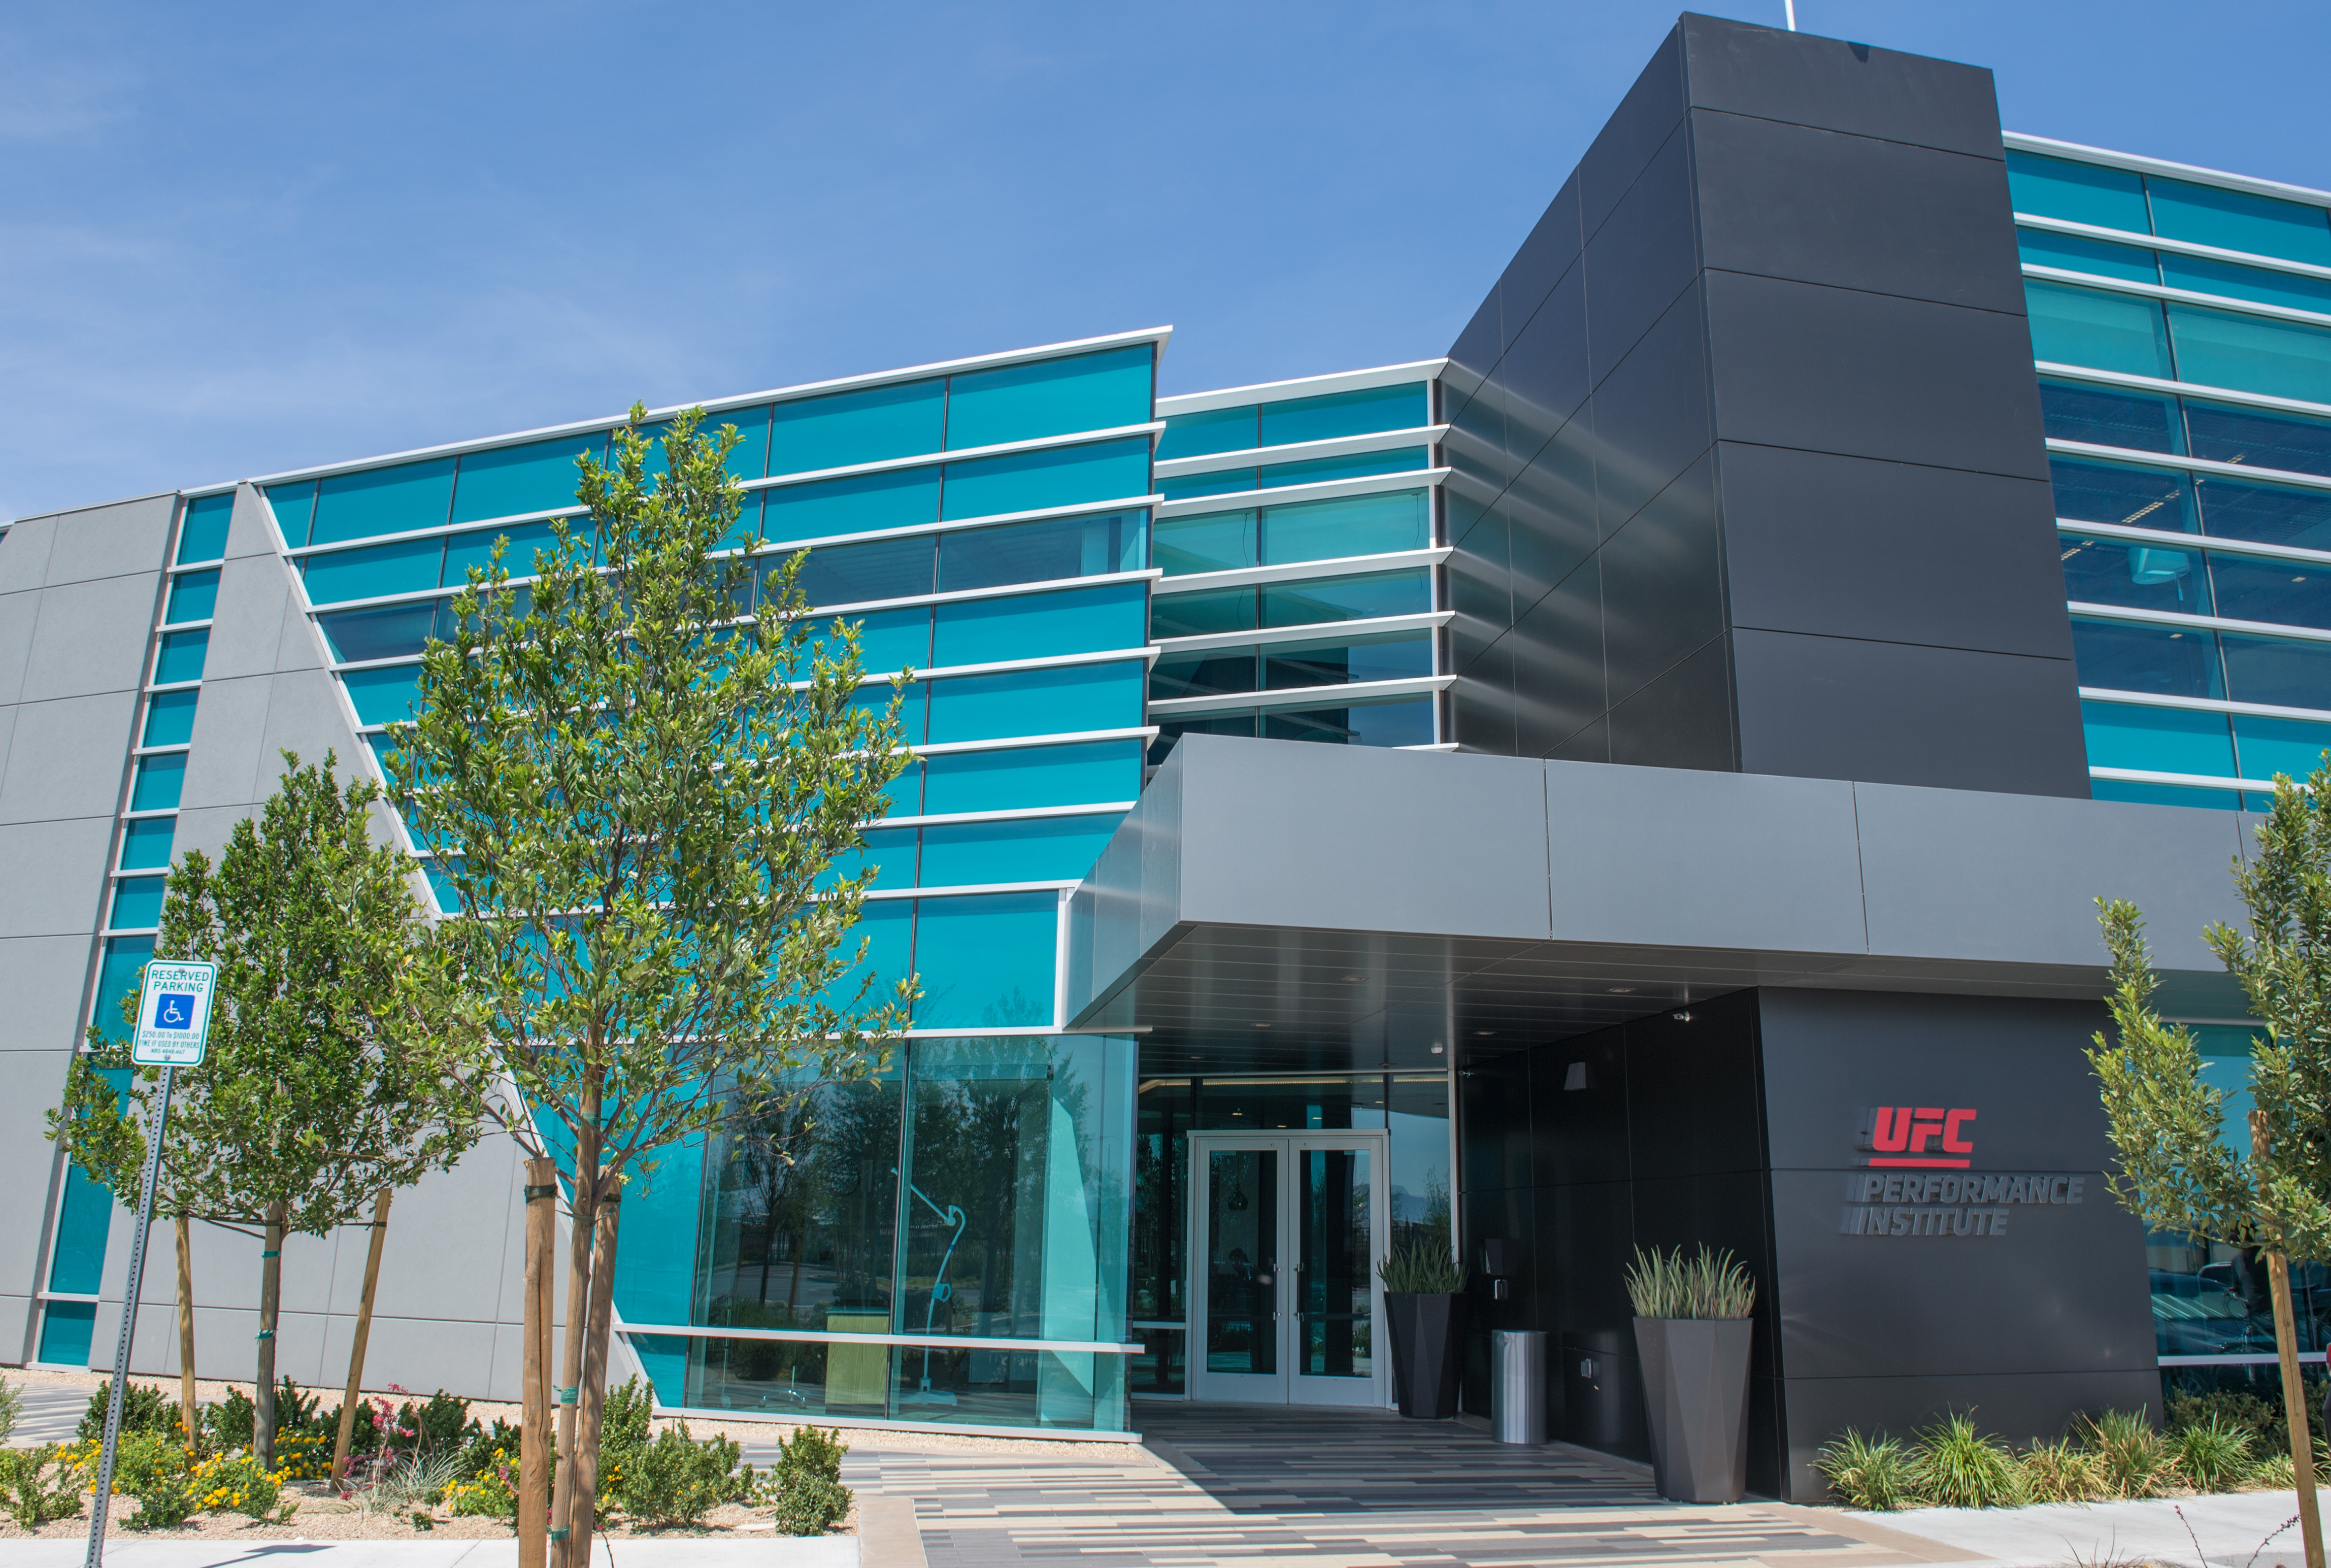 A General Image Of The UFC Performance Institute